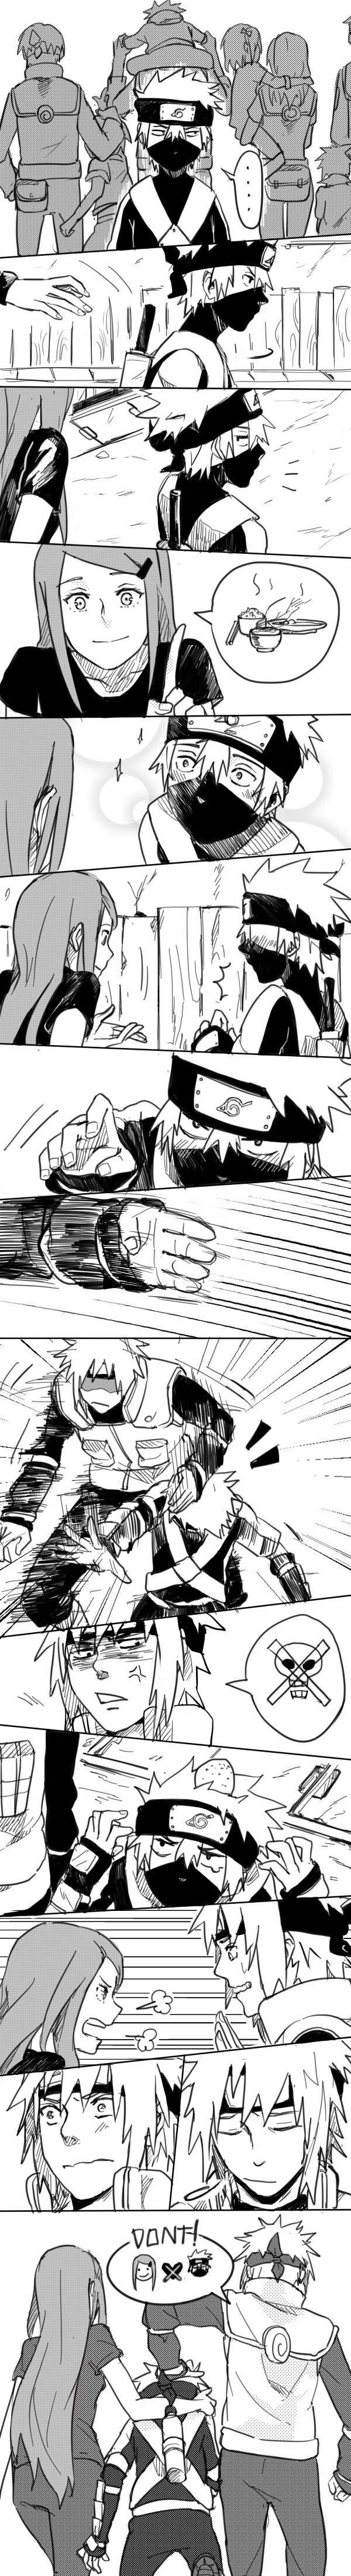 Minato+Kushina+Kakashi by warable.deviantart.com on @deviantART --- (I don't think Minato would suspect any such thing, but this is cute anyway.)